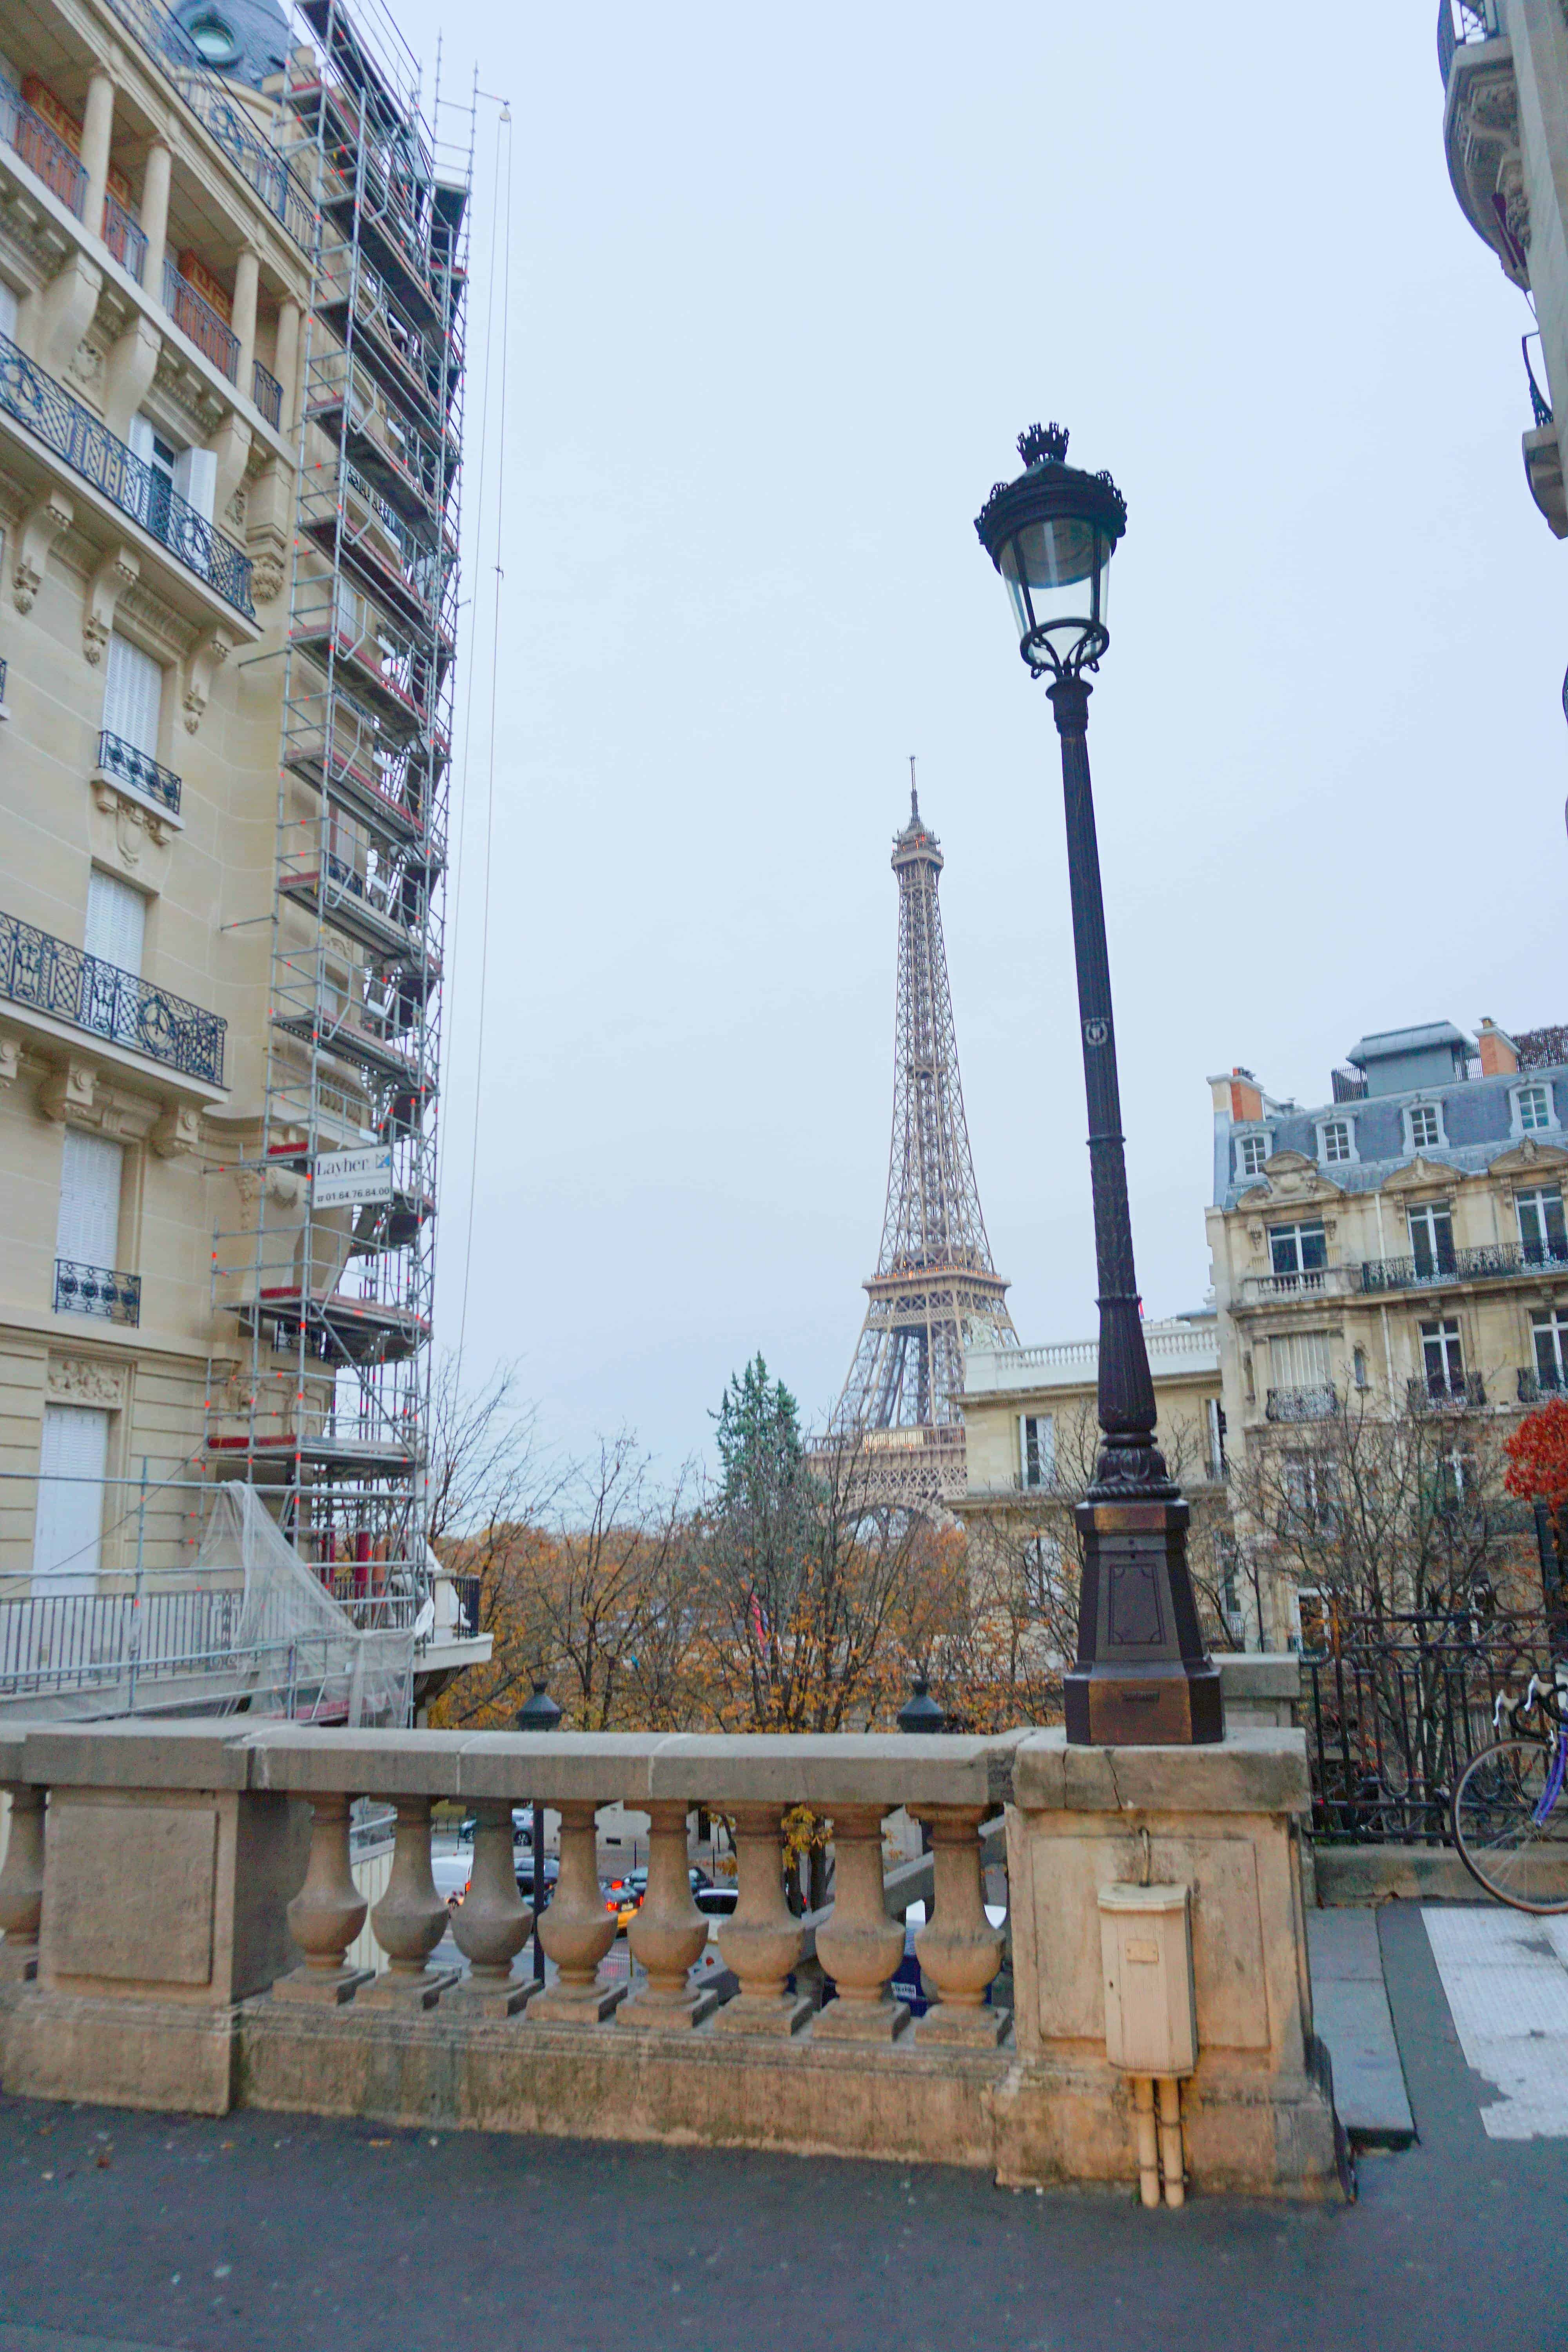 Avenue de Camoens is one of the cutest streets in Paris for a view of the Eiffel Tower